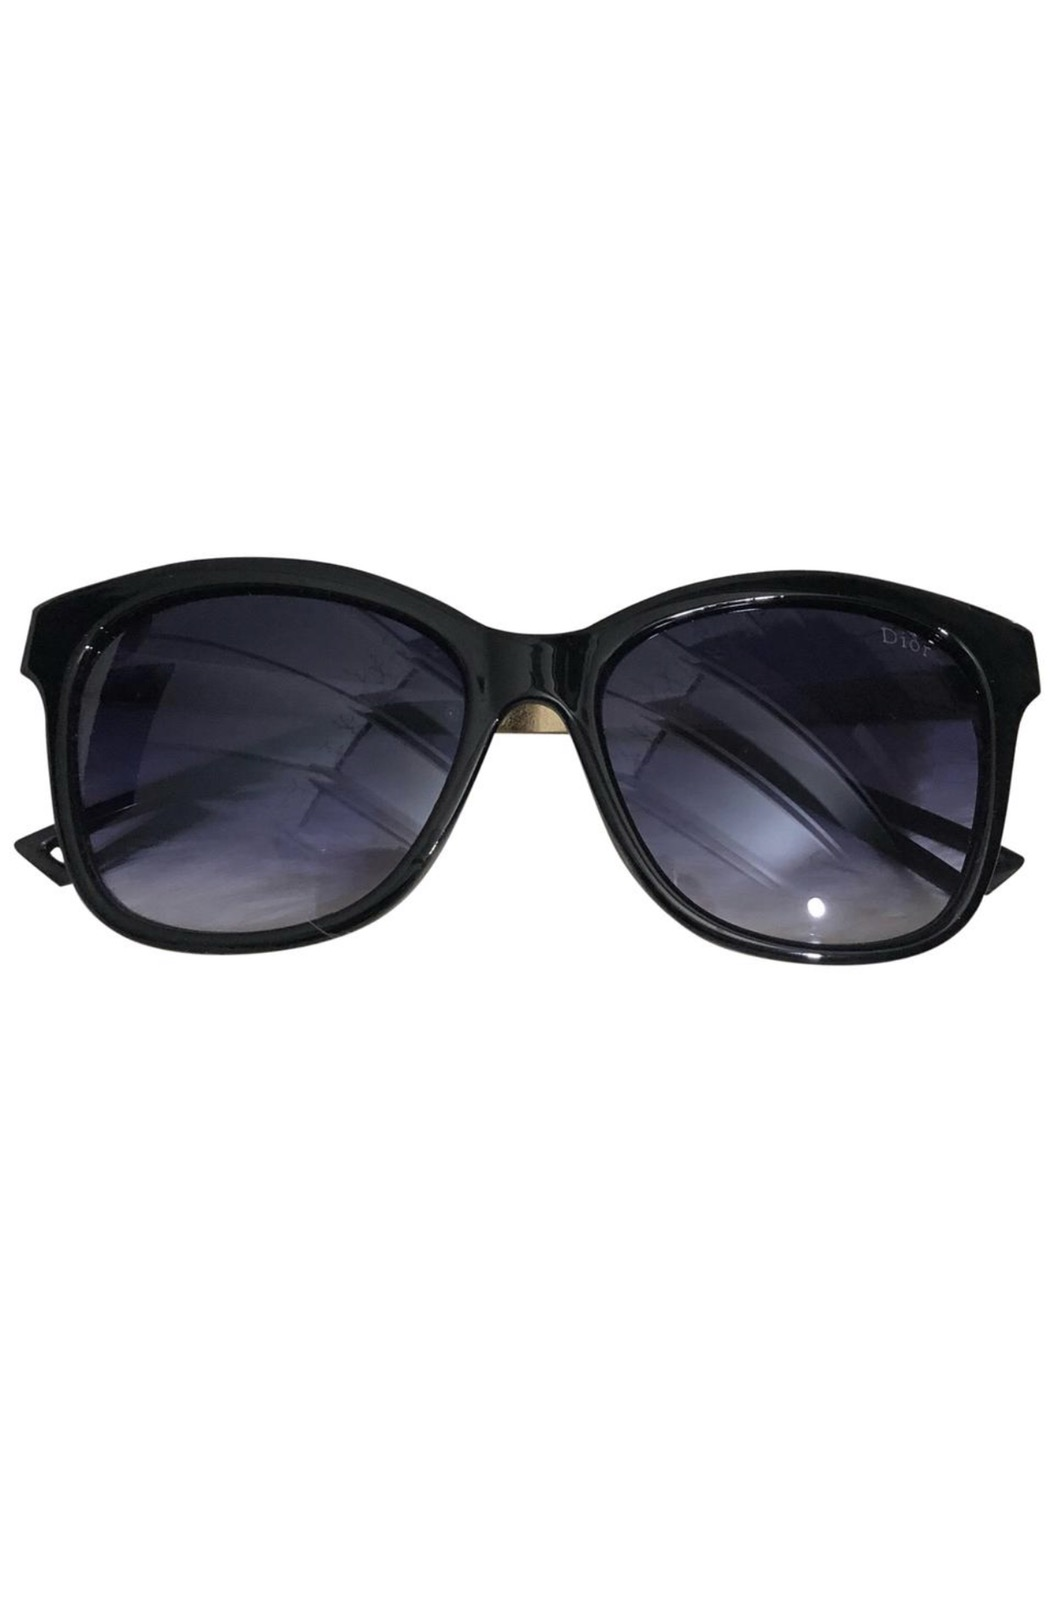 6ac65653f6d6 Christian Dior Sunglasses 0